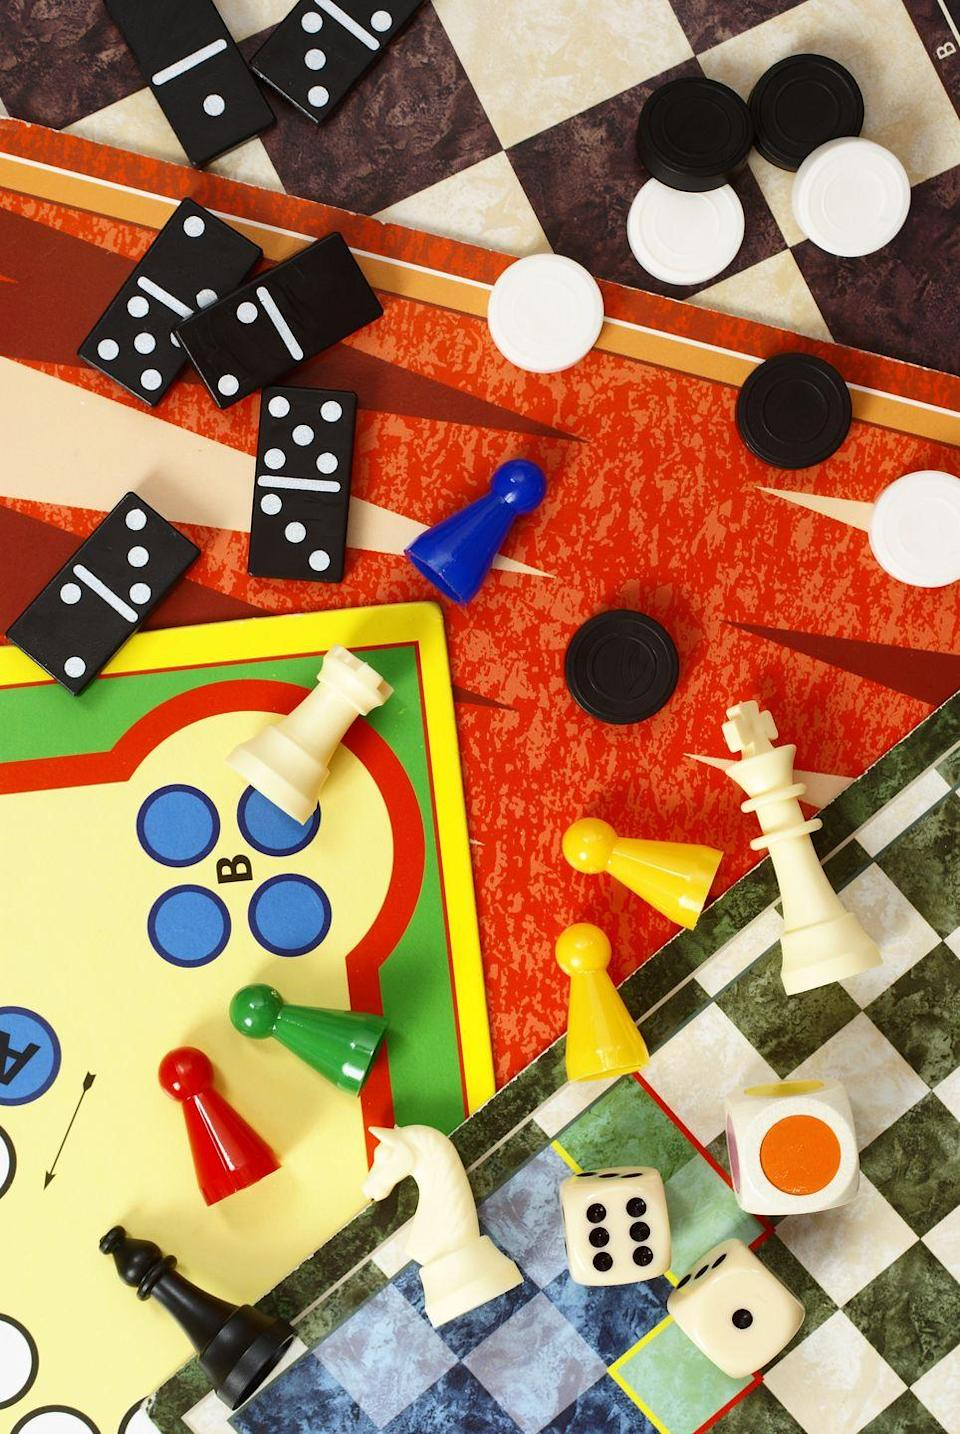 """<p>What's the quickest way to beat boredom? A treasure trove of <a href=""""https://www.oprahmag.com/life/g28436280/games-to-play-with-friends/"""" rel=""""nofollow noopener"""" target=""""_blank"""" data-ylk=""""slk:fun games"""" class=""""link rapid-noclick-resp"""">fun games</a> that'll have the whole family laughing in no time. </p><p><a class=""""link rapid-noclick-resp"""" href=""""https://www.amazon.com/dp/B01A7U245Q?linkCode=xm2&tag=syn-yahoo-20&ascsubtag=%5Bartid%7C10072.g.31703166%5Bsrc%7Cyahoo-us"""" rel=""""nofollow noopener"""" target=""""_blank"""" data-ylk=""""slk:SHOP GAMES"""">SHOP GAMES</a></p>"""